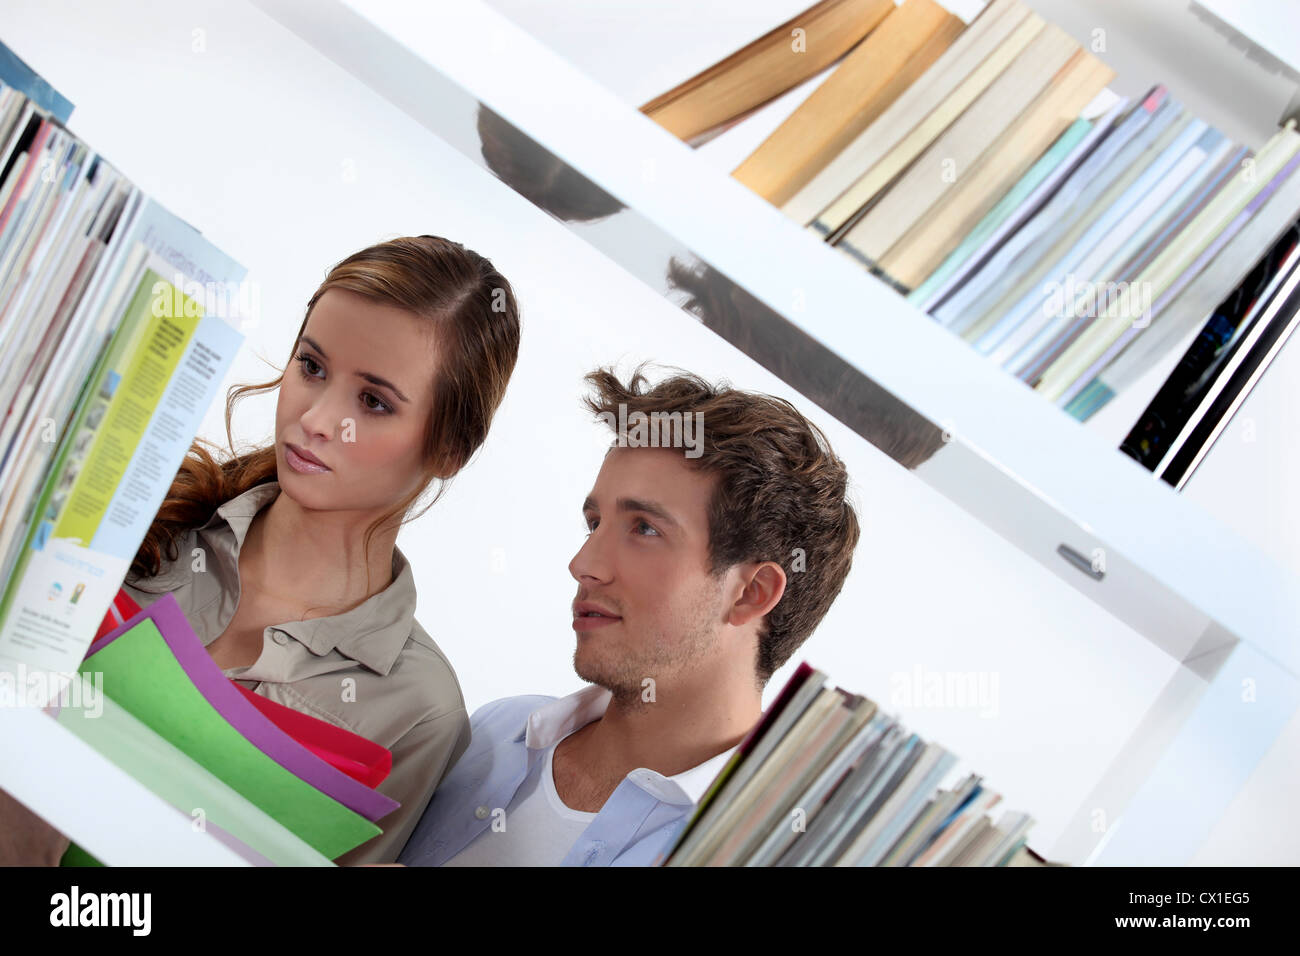 Teens in Library - Stock Image